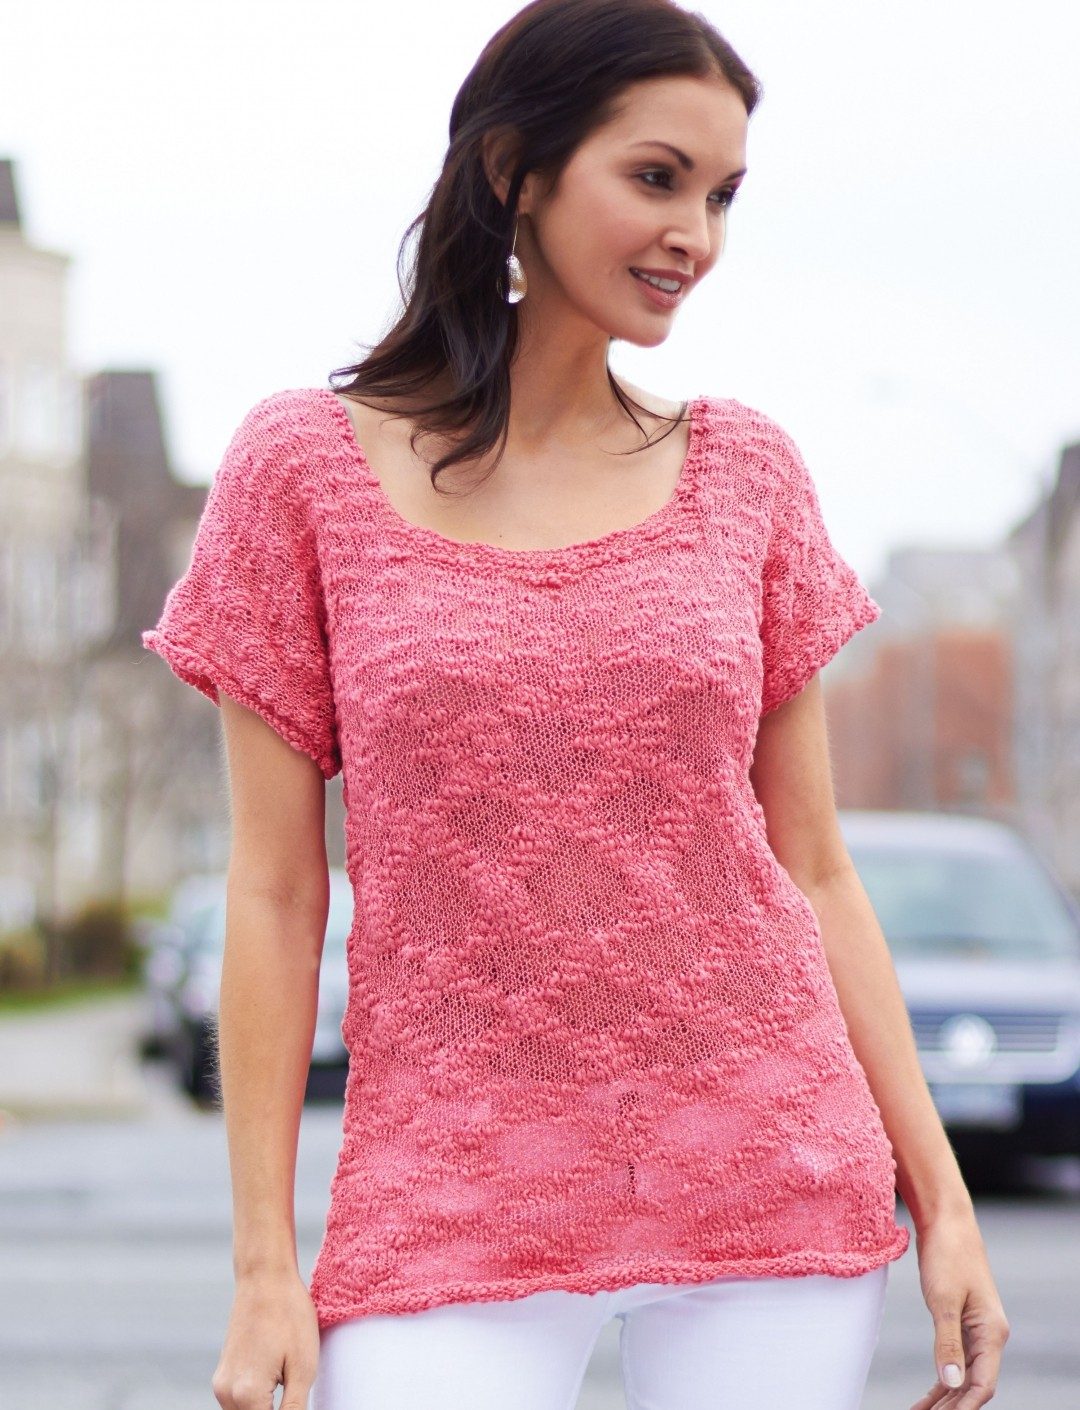 Knitted Tank Top Patterns Tops Tanks Tees Knitting Patterns In The Loop Knitting